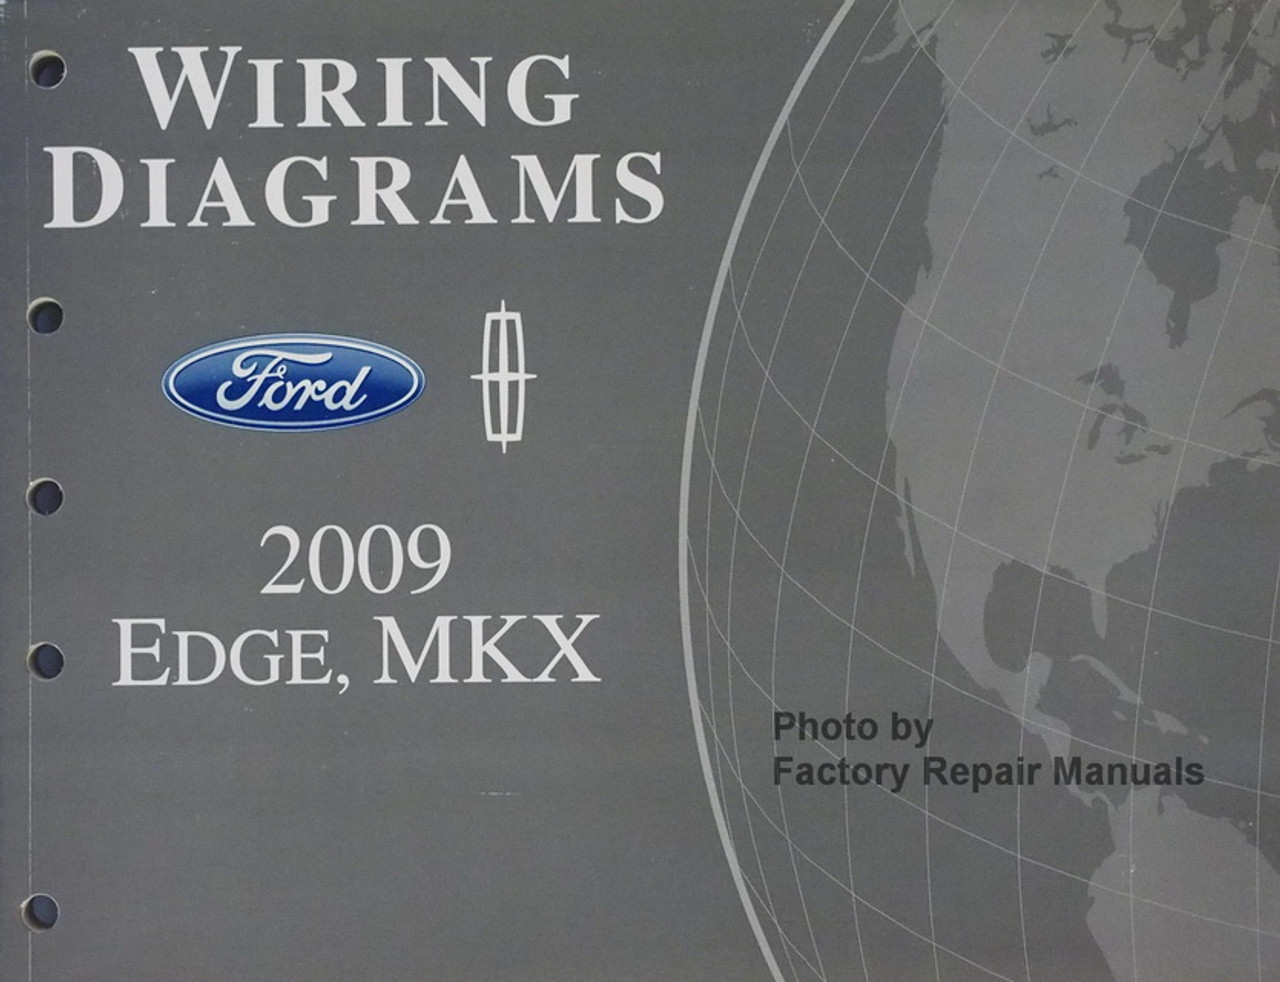 2014 FORD Edge Lincoln MKX Electrical Wiring Diagrams OEM Manual